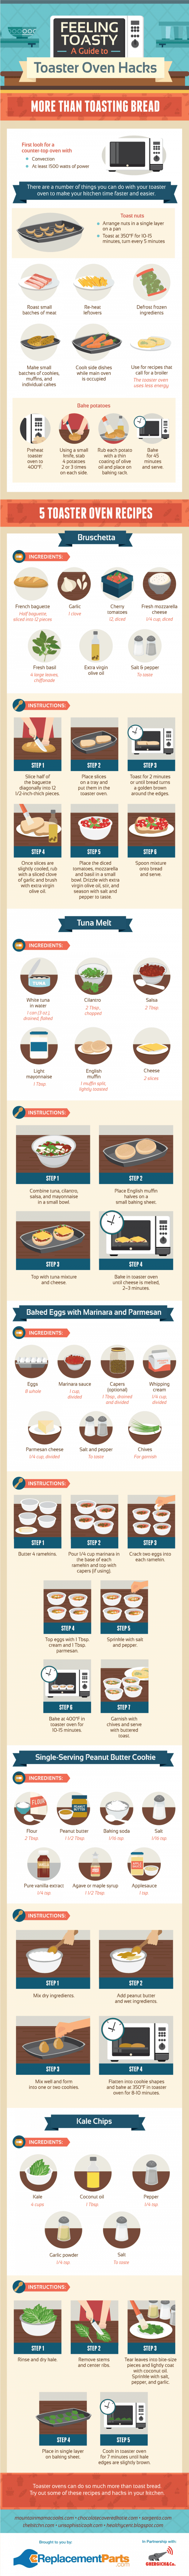 Guide For Easy Toaster Recipes Infographic